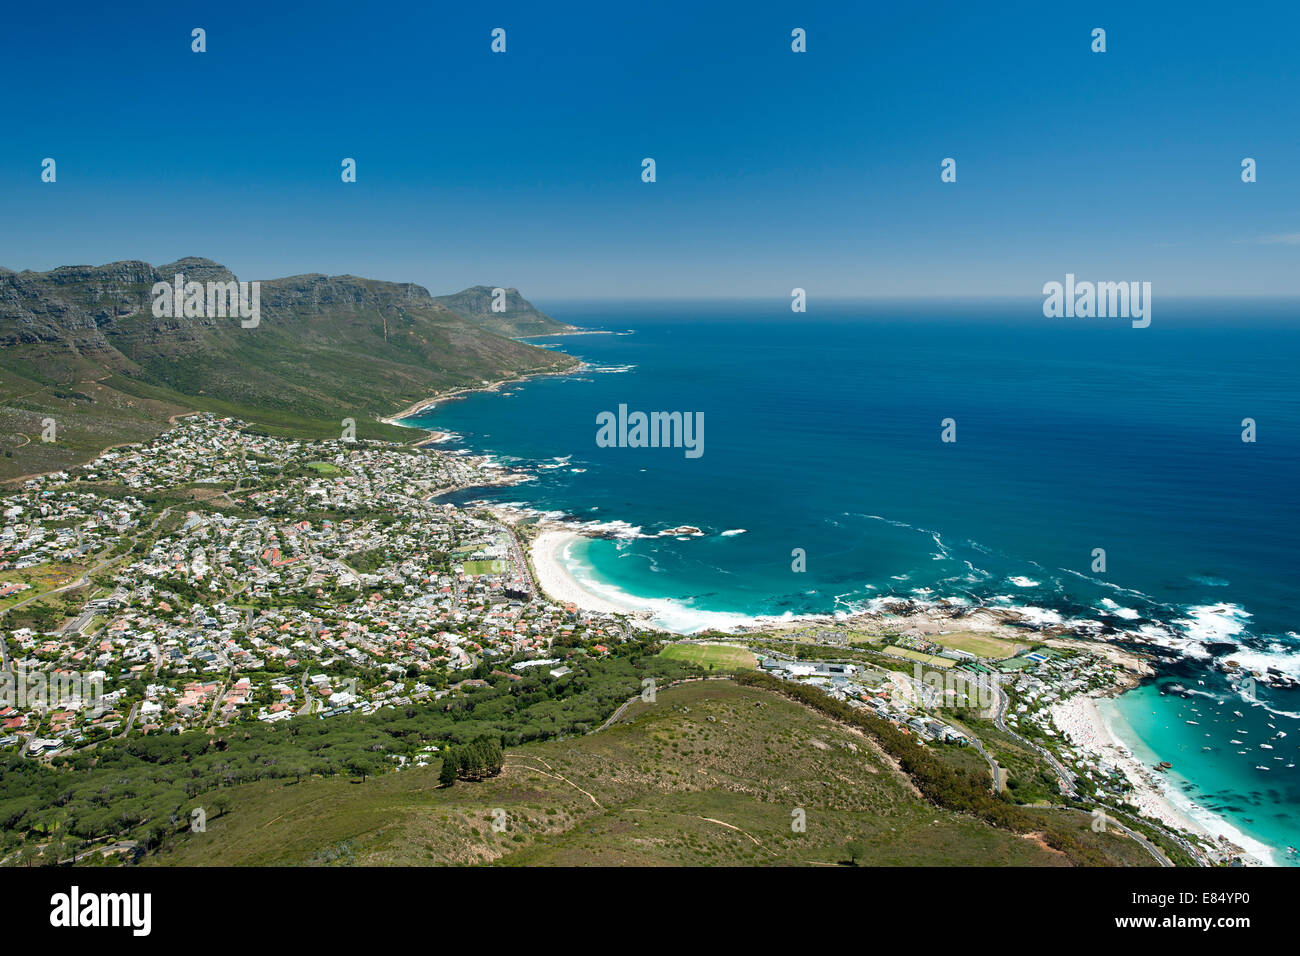 Cape Town's Atlantic seaboard showing the Twelve Apostles mountains and Camps Bay suburb and beach. - Stock Image